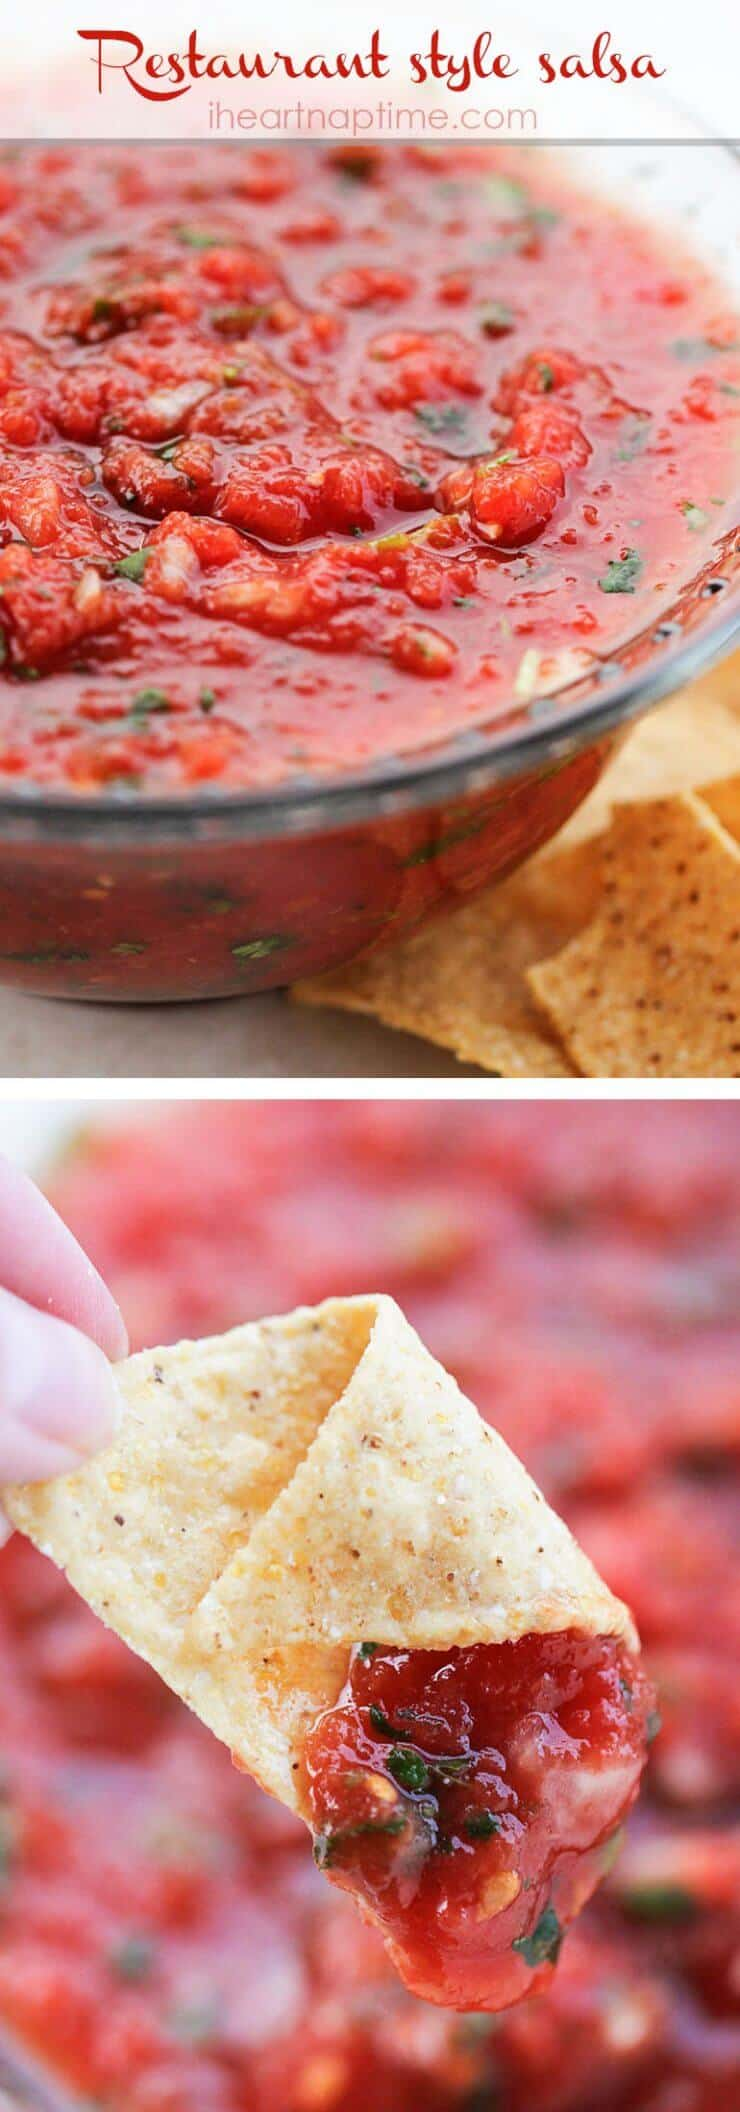 Calories Chips And Salsa Mexican Restaurant